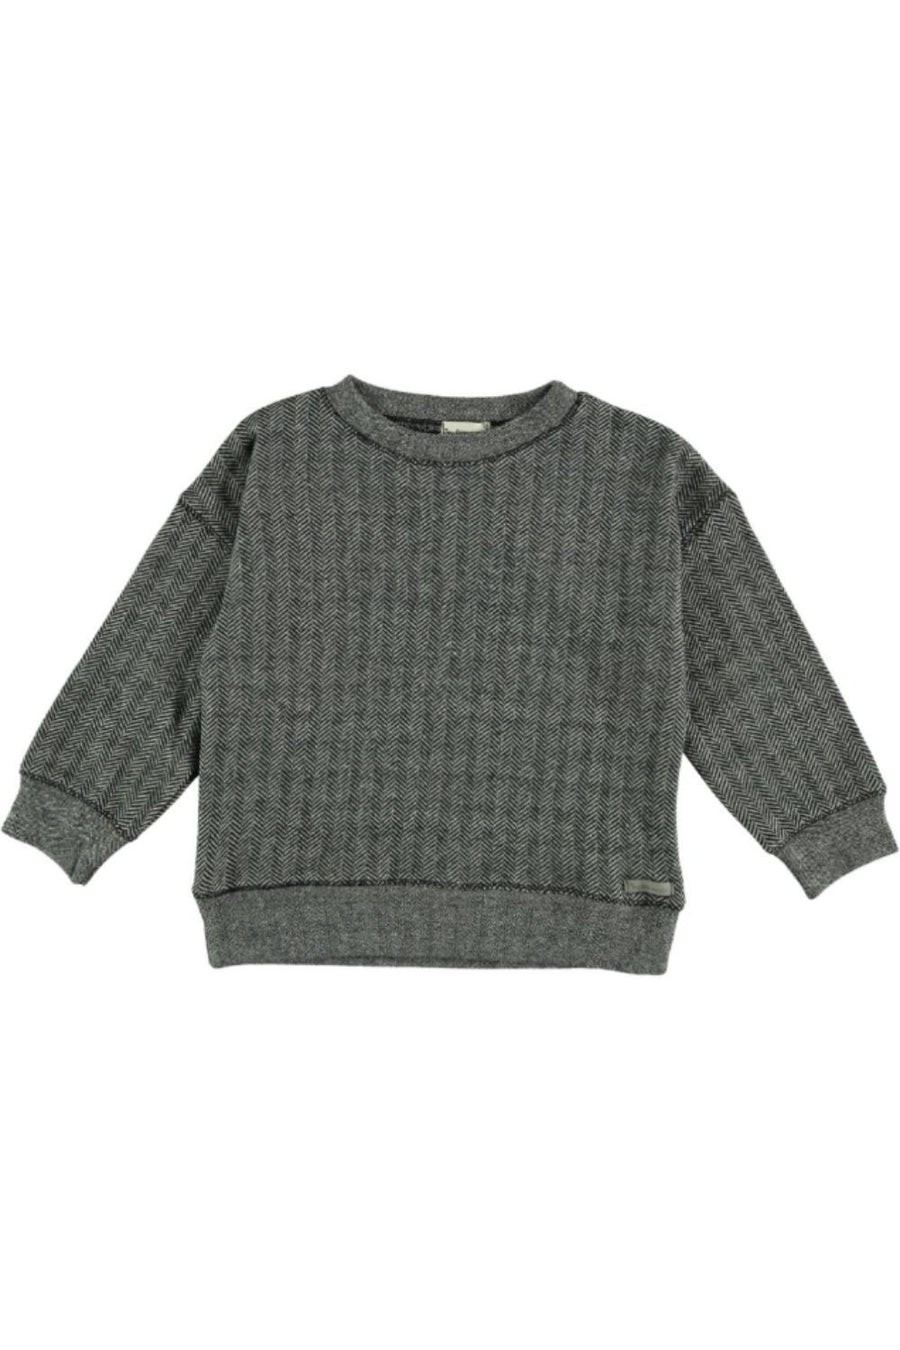 KIDS JERSEY PREMIUM TWEED